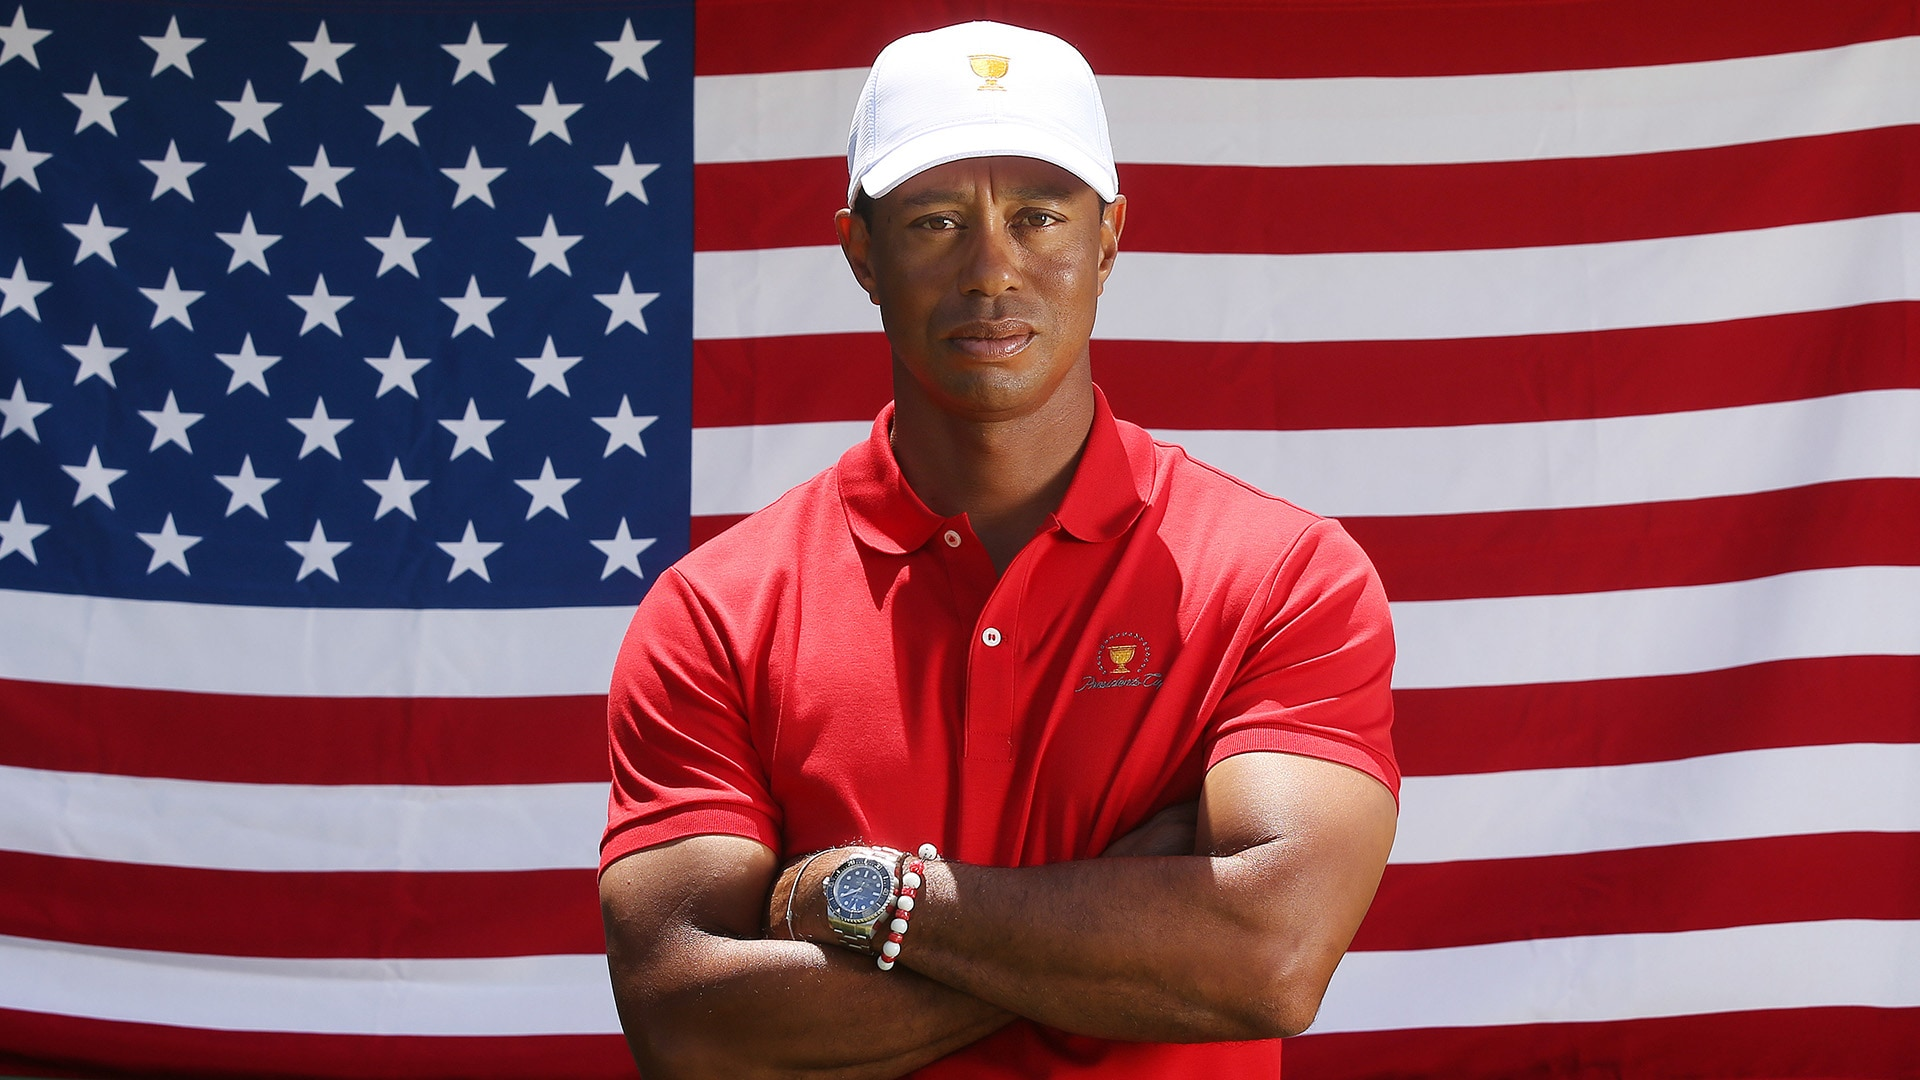 Tiger Woods ahead of 2019 Presidents Cup